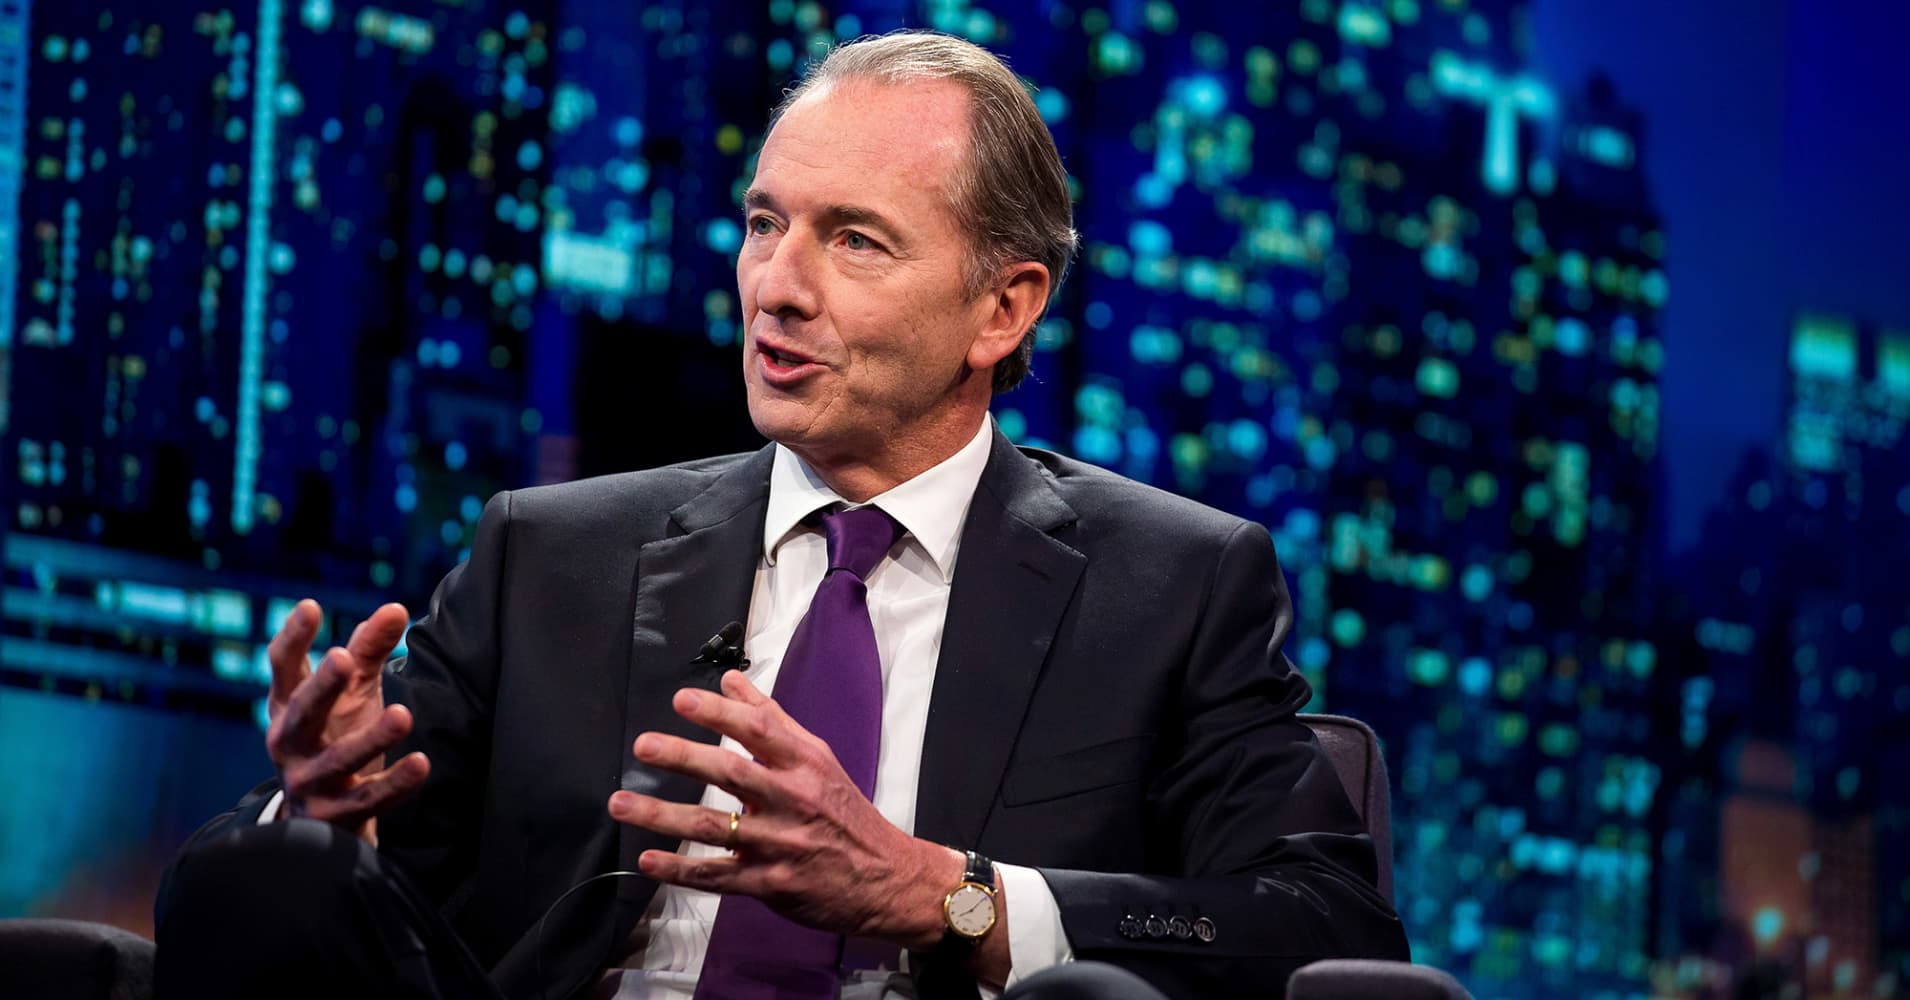 Morgan Stanley Ceo Gorman Differs With Dimon Says Digital